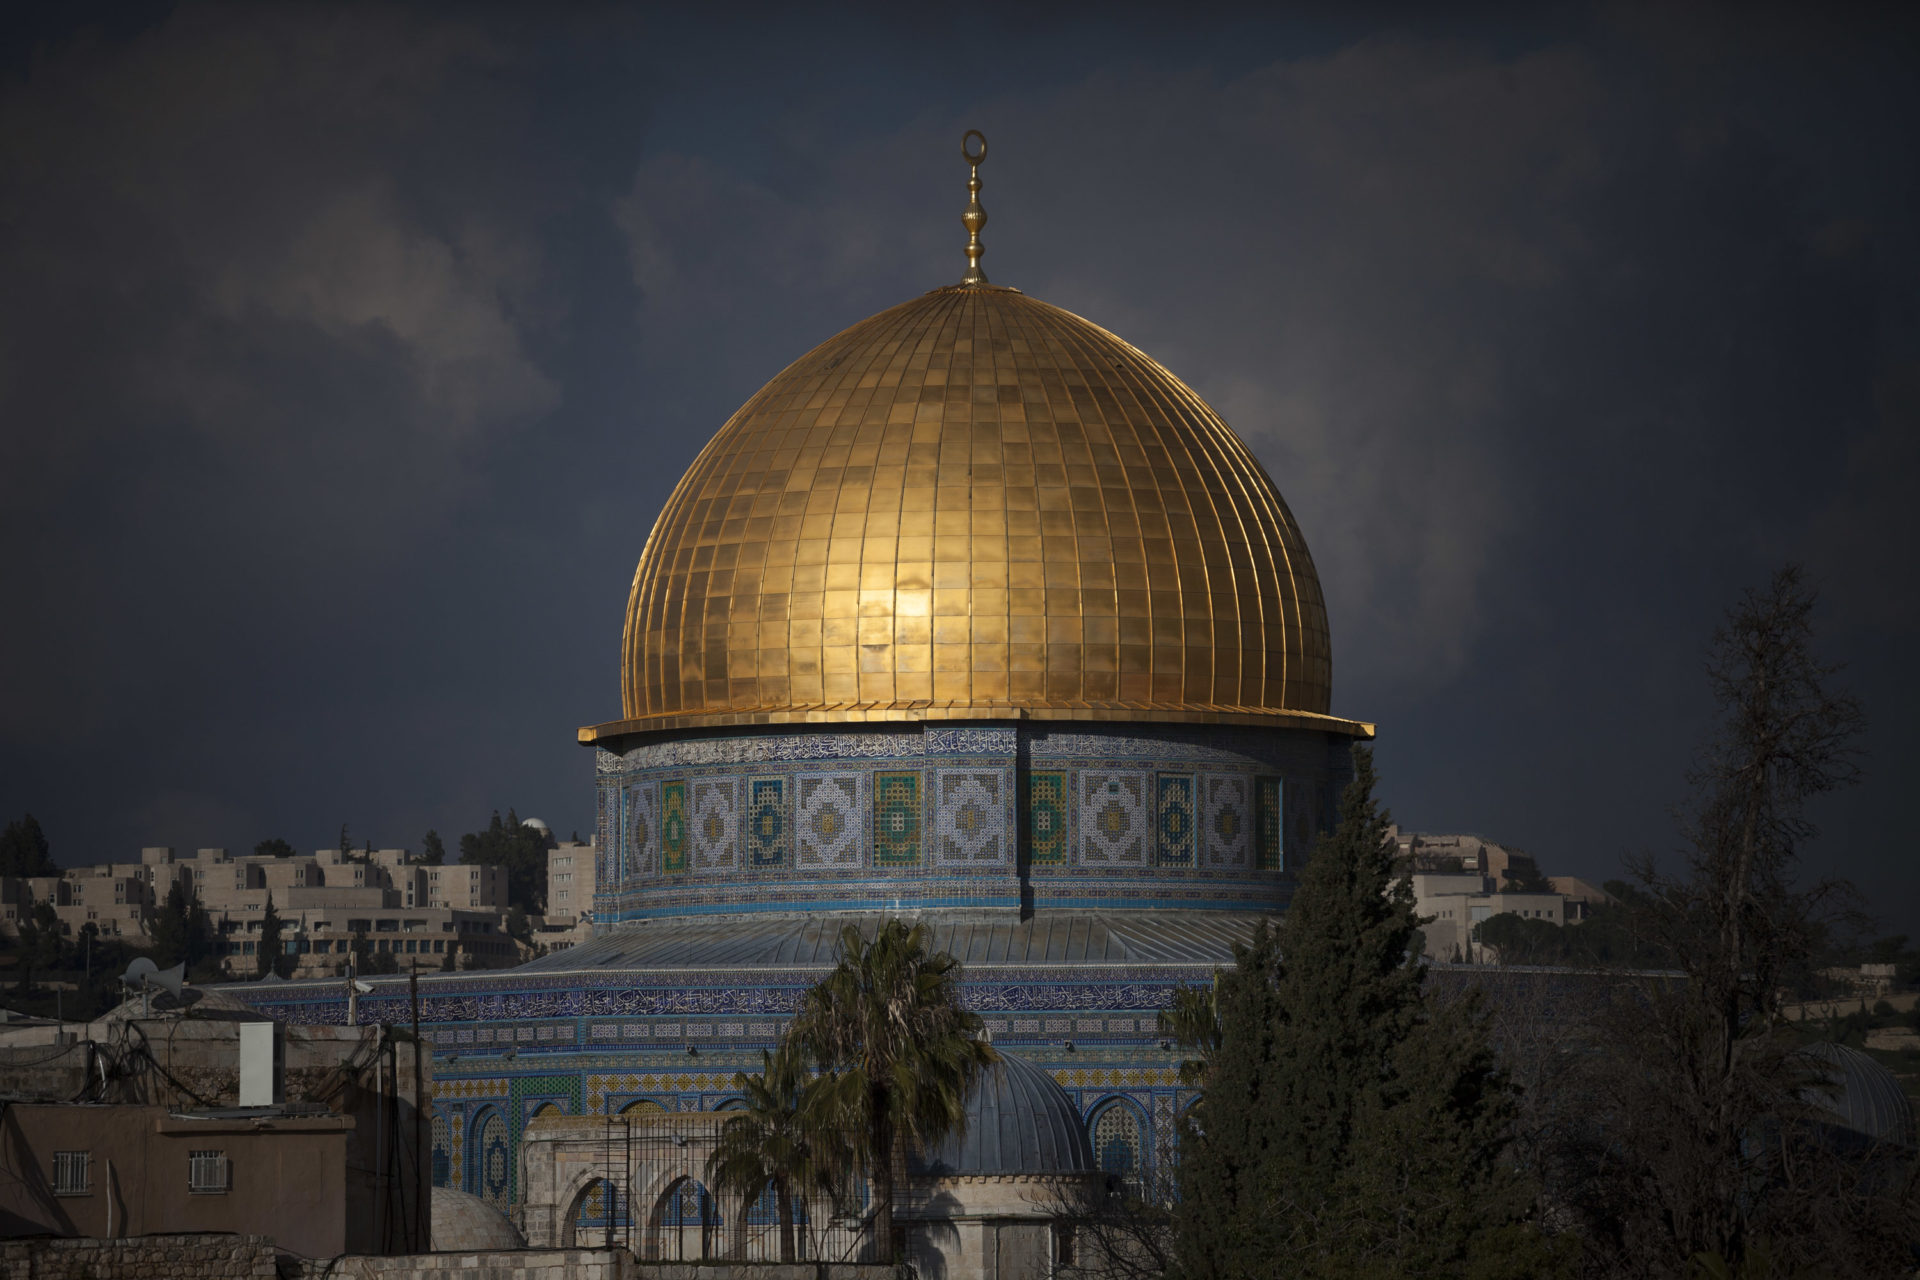 The Dome of the Rock. Built in the 7th century by the caliph Abd al-Malik to mark his victory in a civil war, the shrine is located on the site of the former Jewish temple.